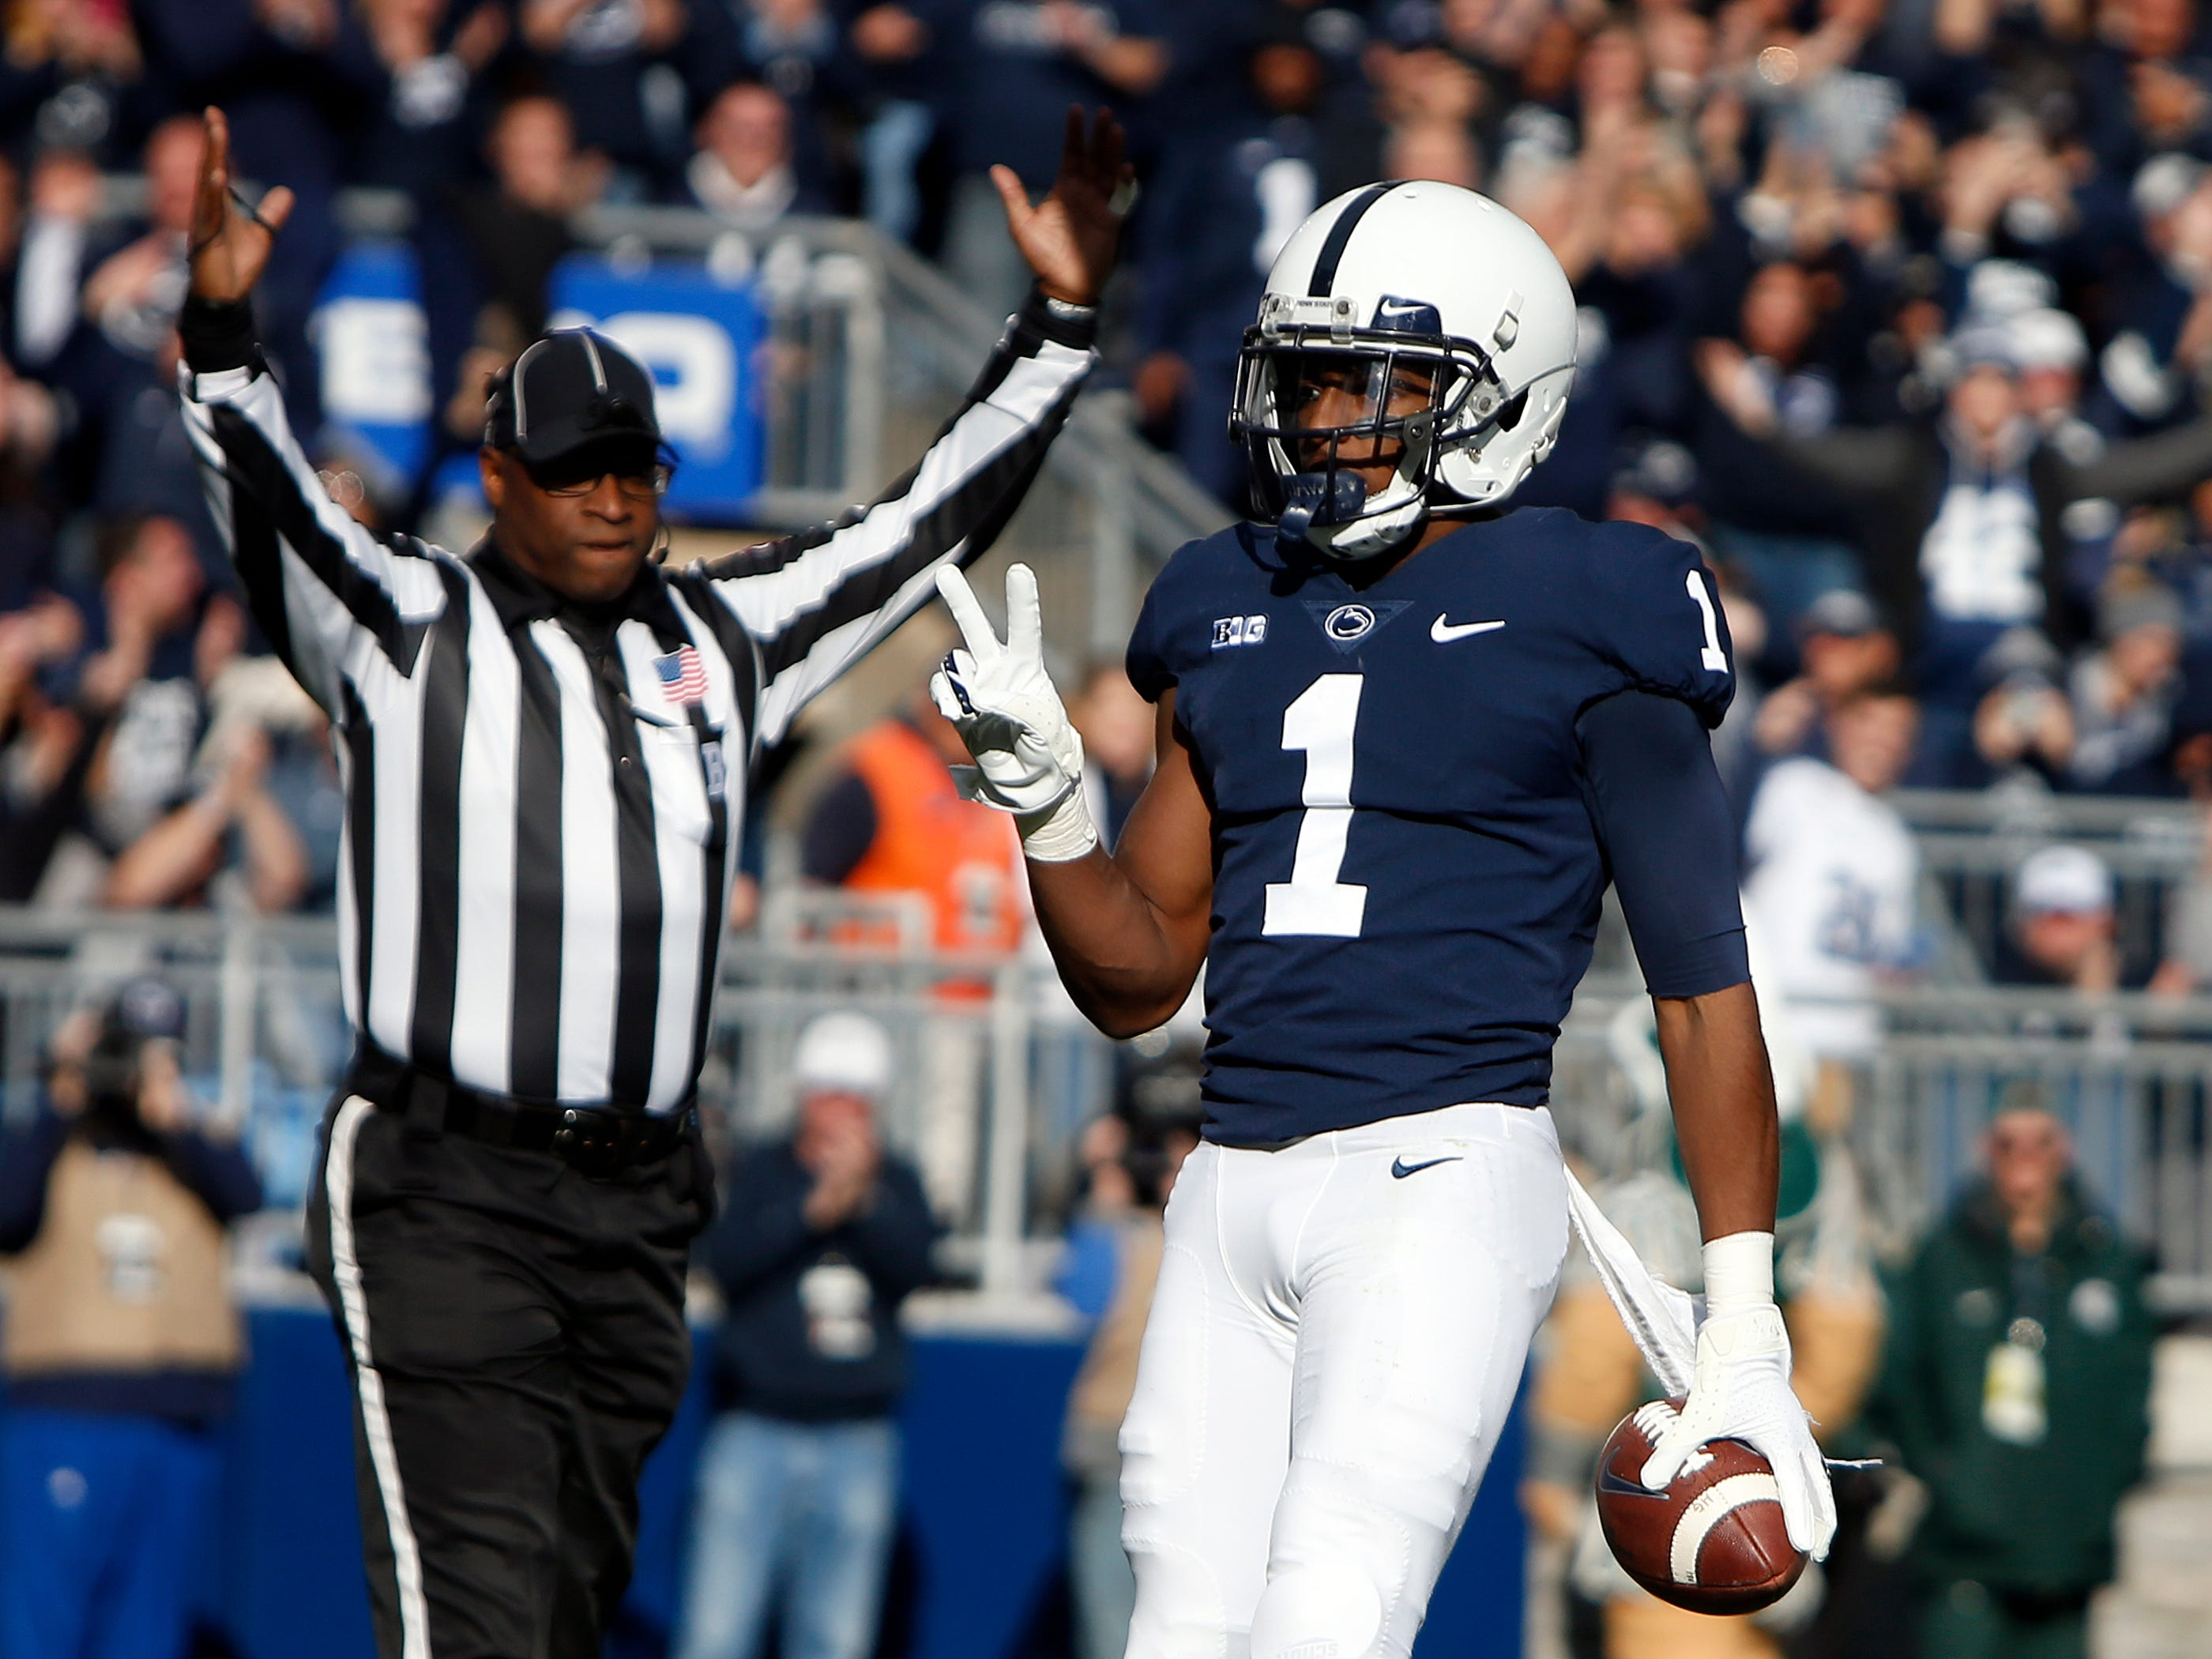 KJ Hamler celebrates after catching a 5-yard touchdown pass in the first half.